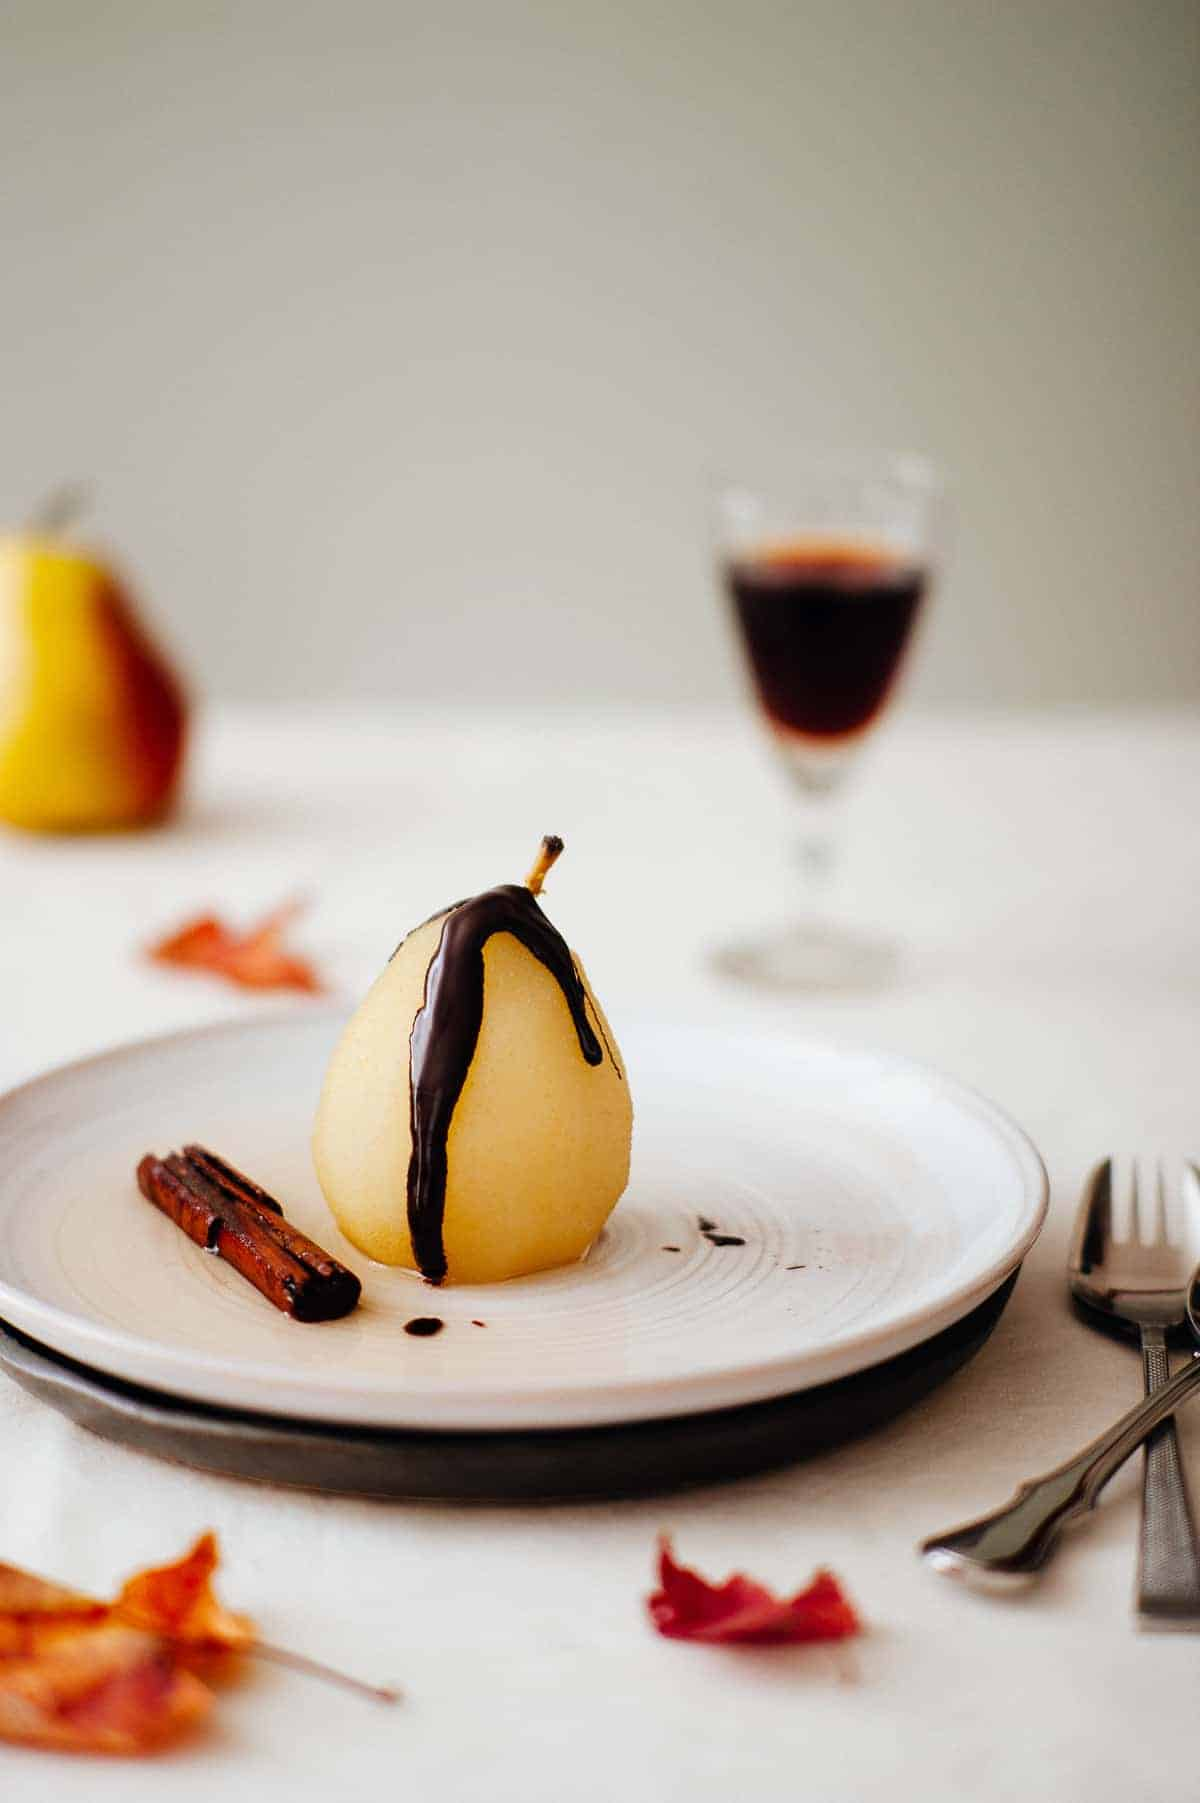 a poached pear on a plate drizzled with chocolate